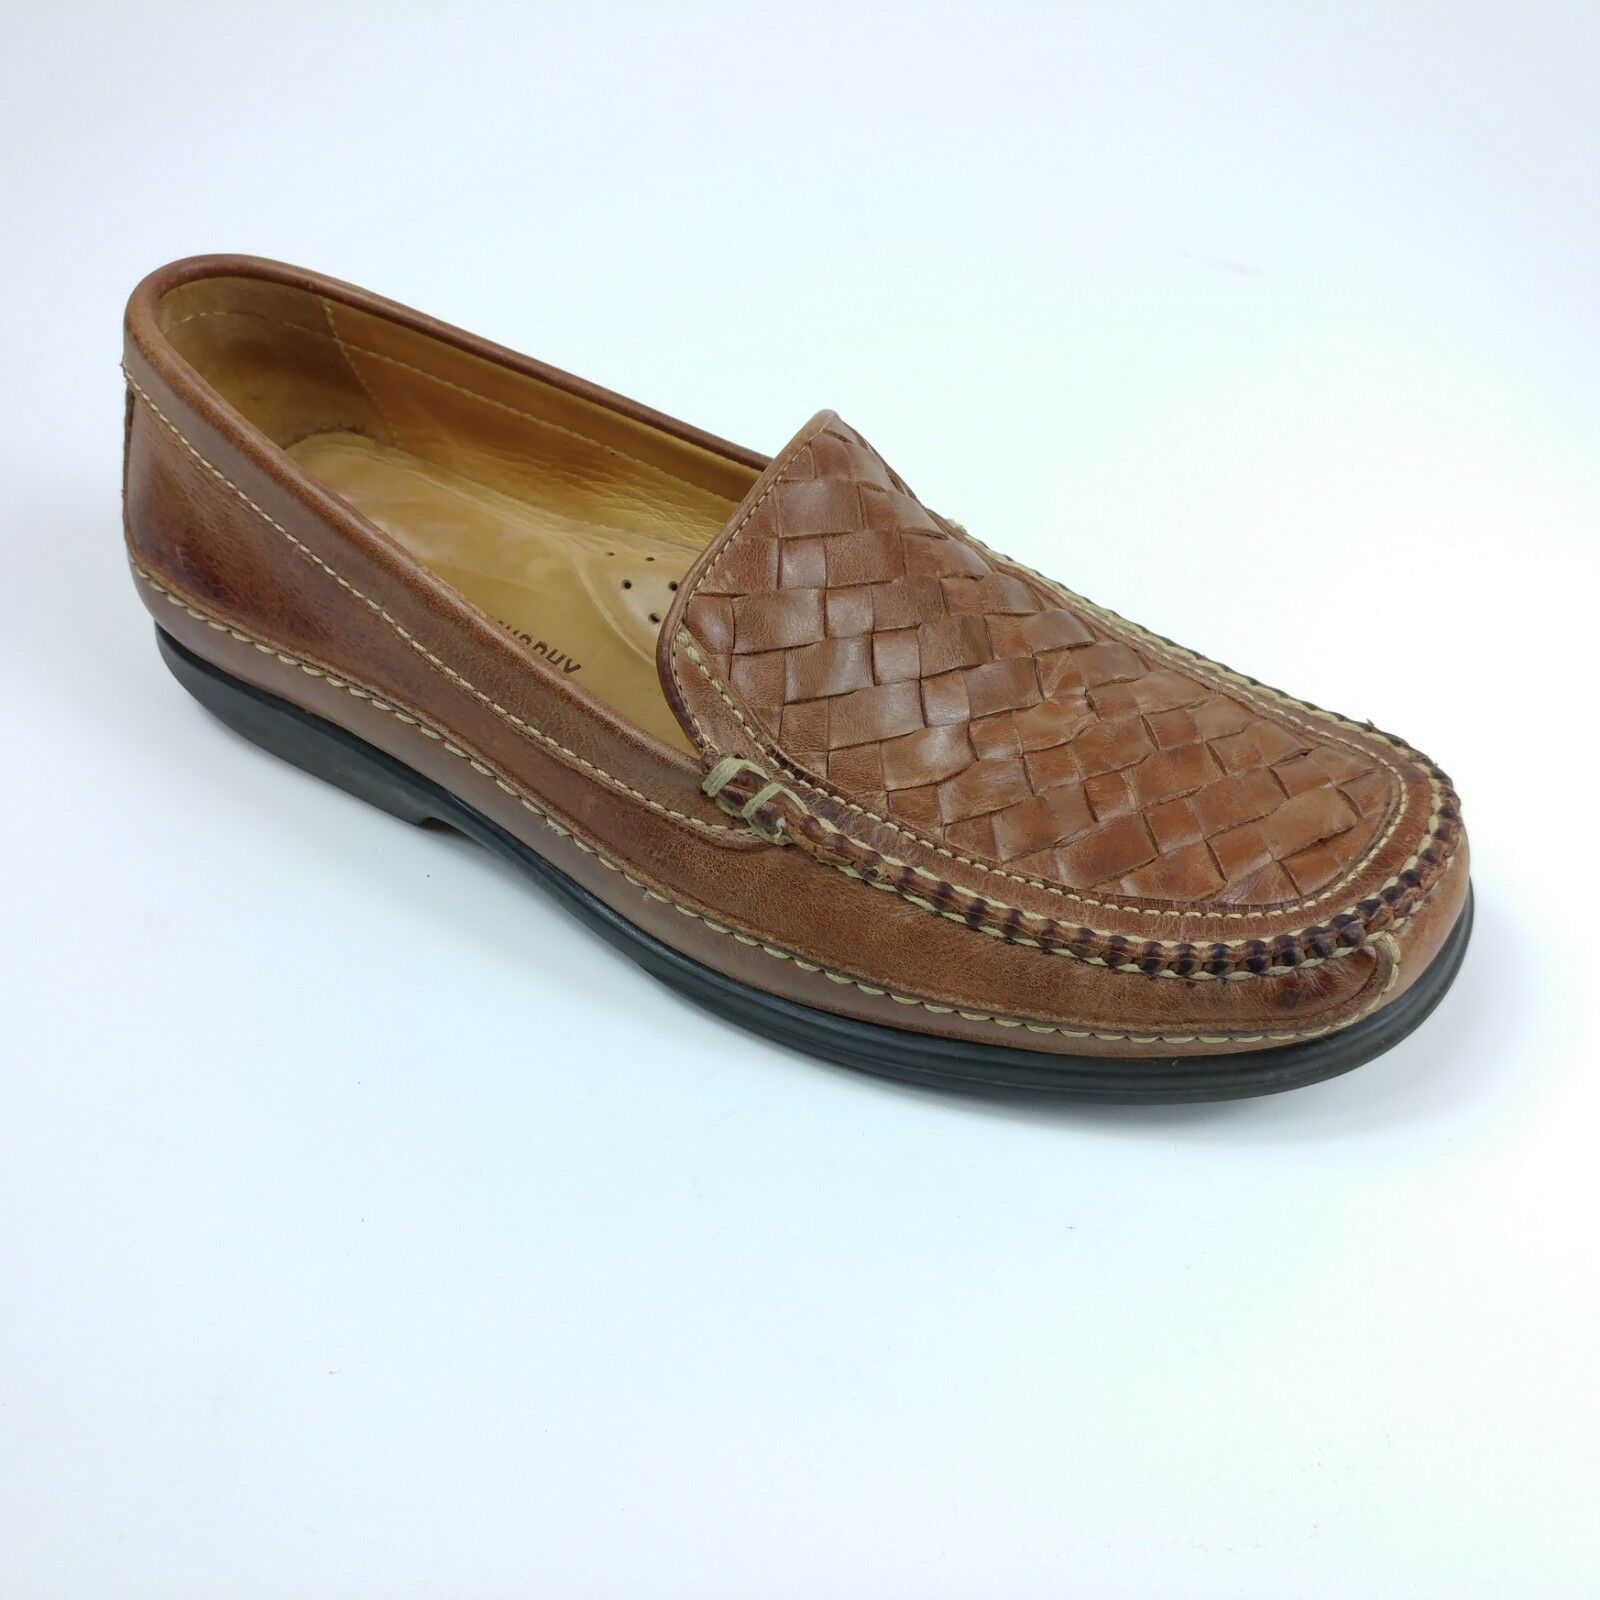 Johnston Murphy Mens 8.5 Leather Woven Loafer Tan Brown Mock Toe